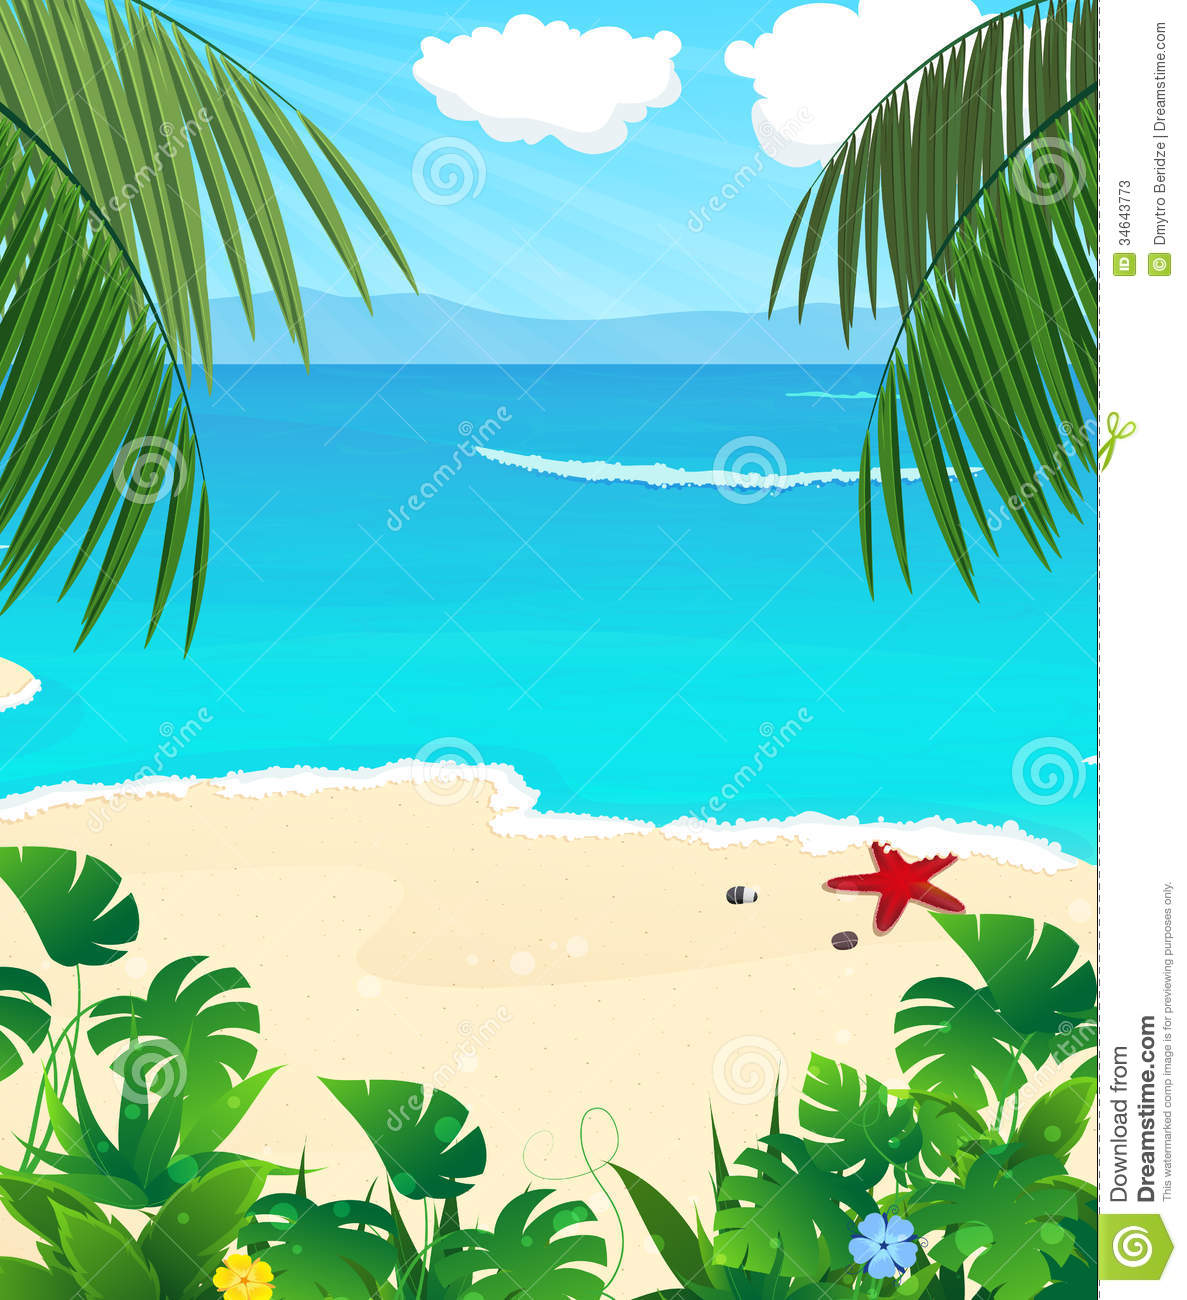 Seascape clipart #8, Download drawings